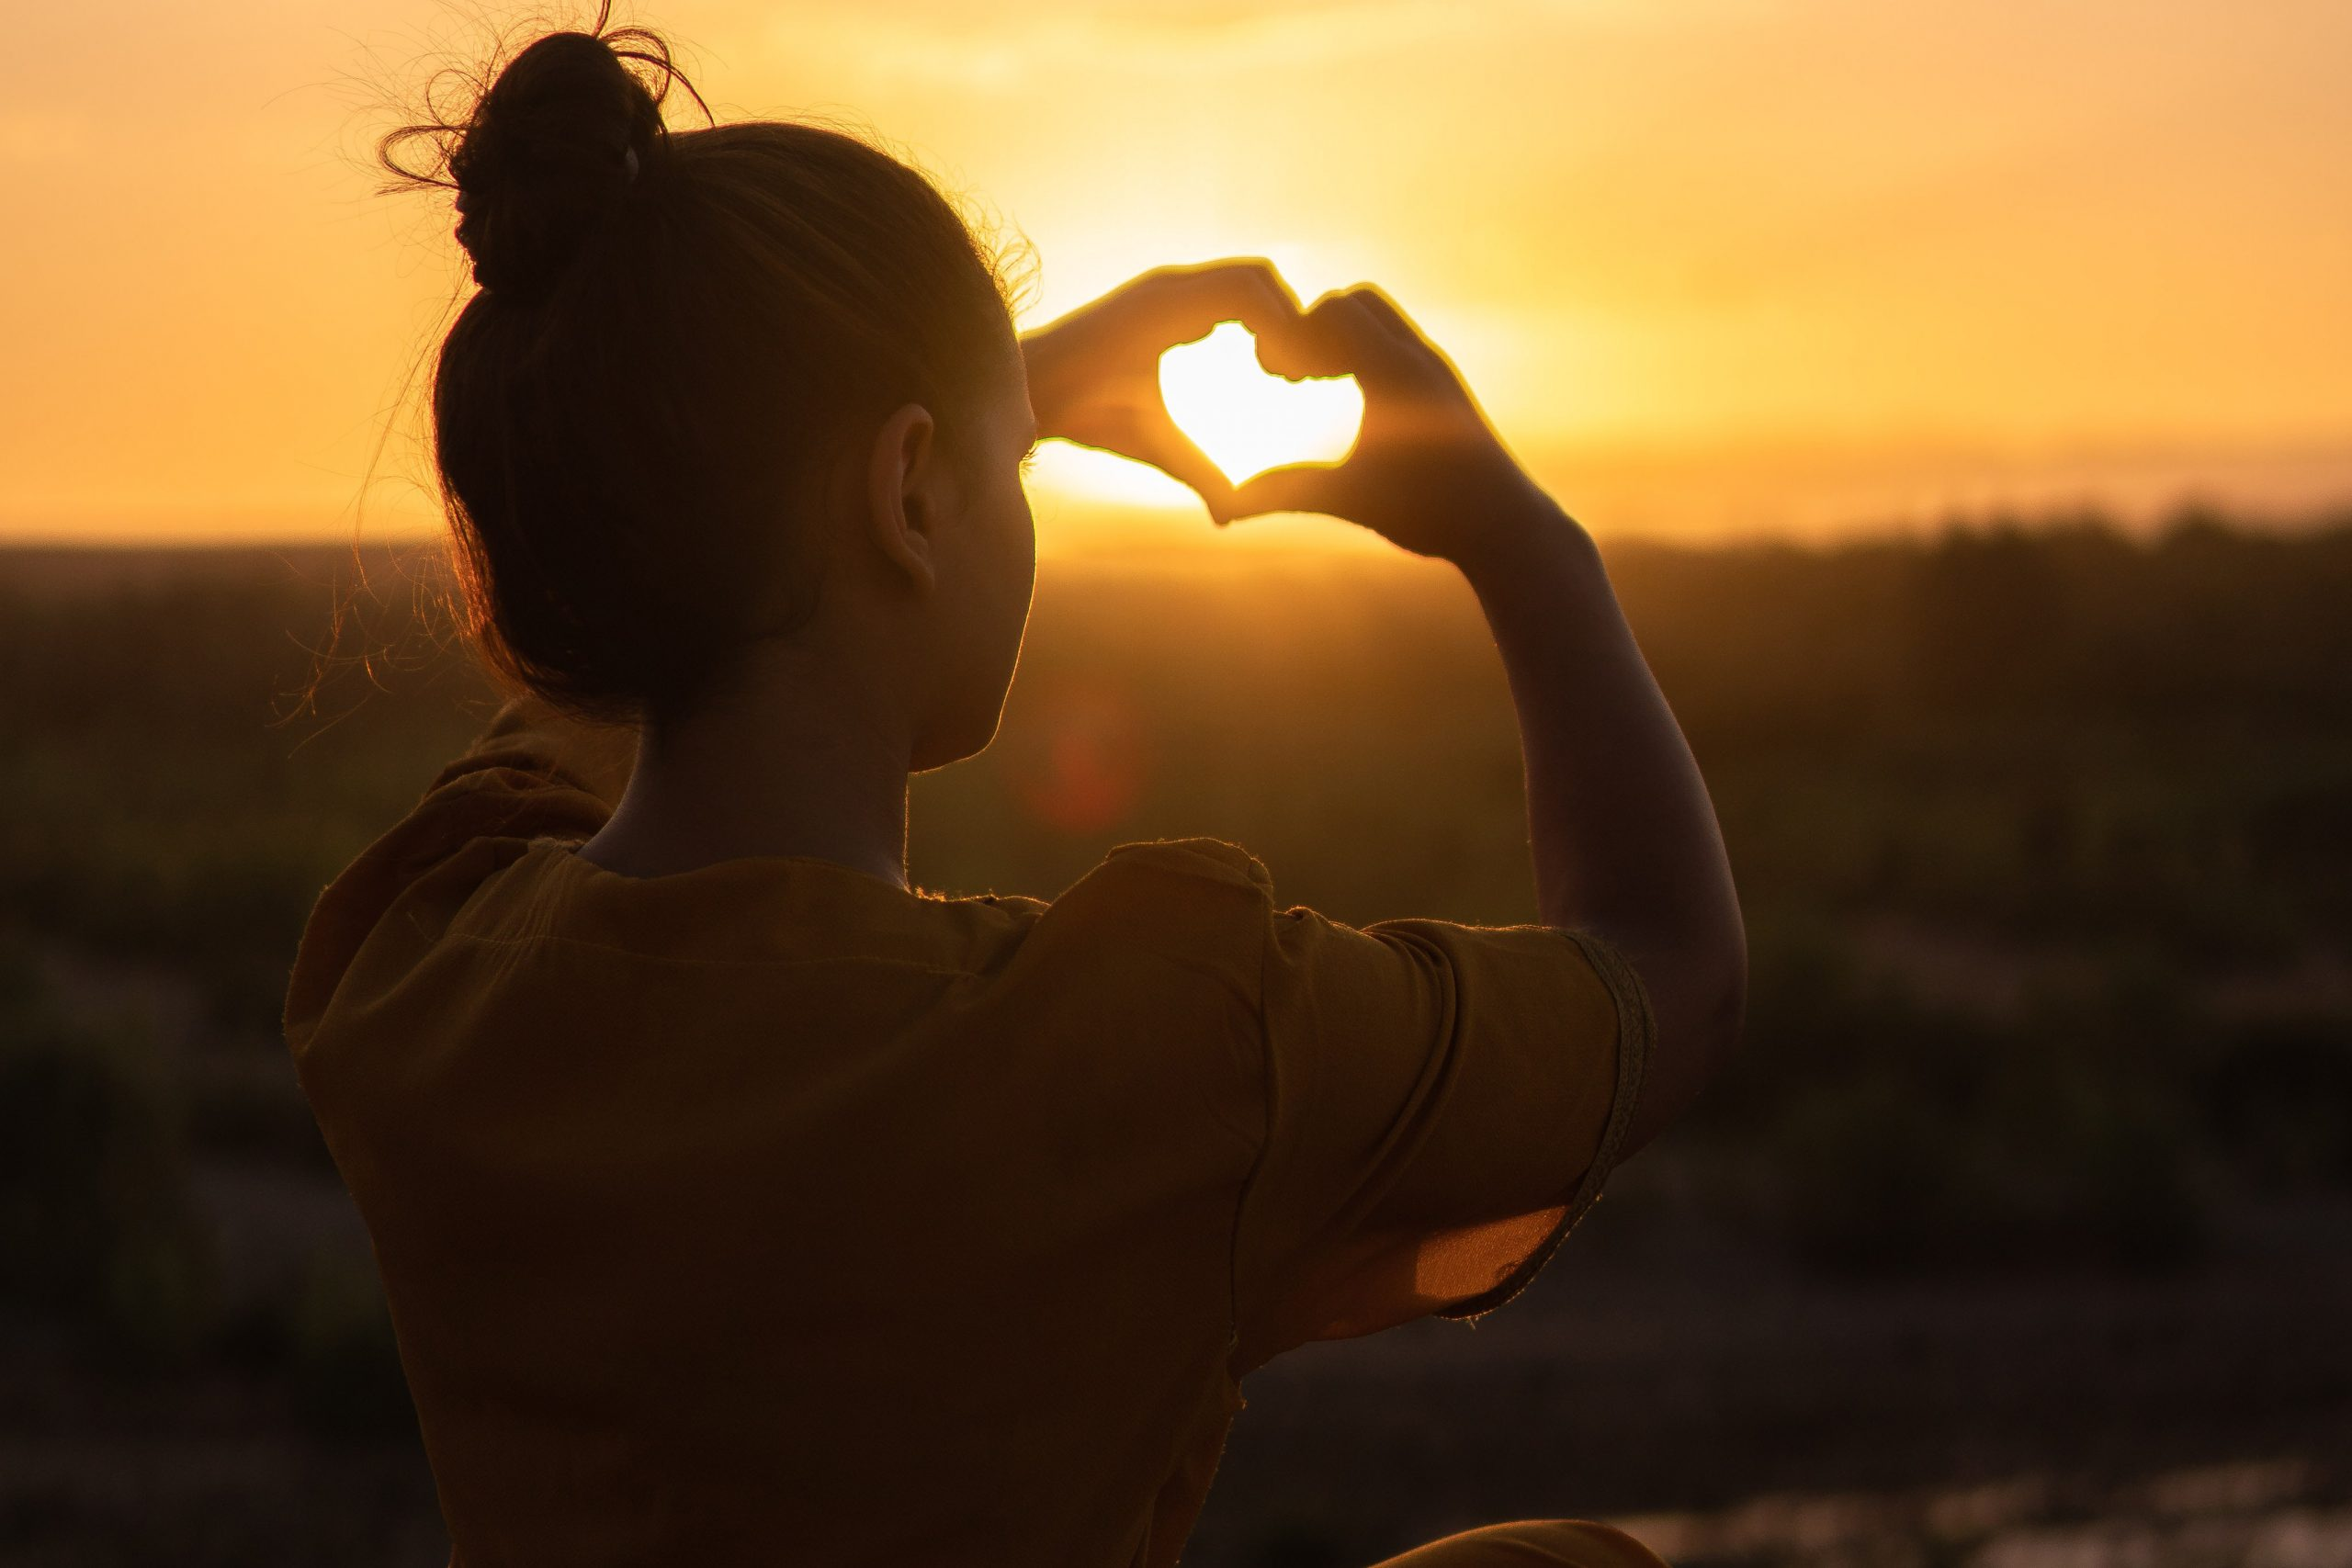 Girl making a heart shape with her hands in front of a sunset